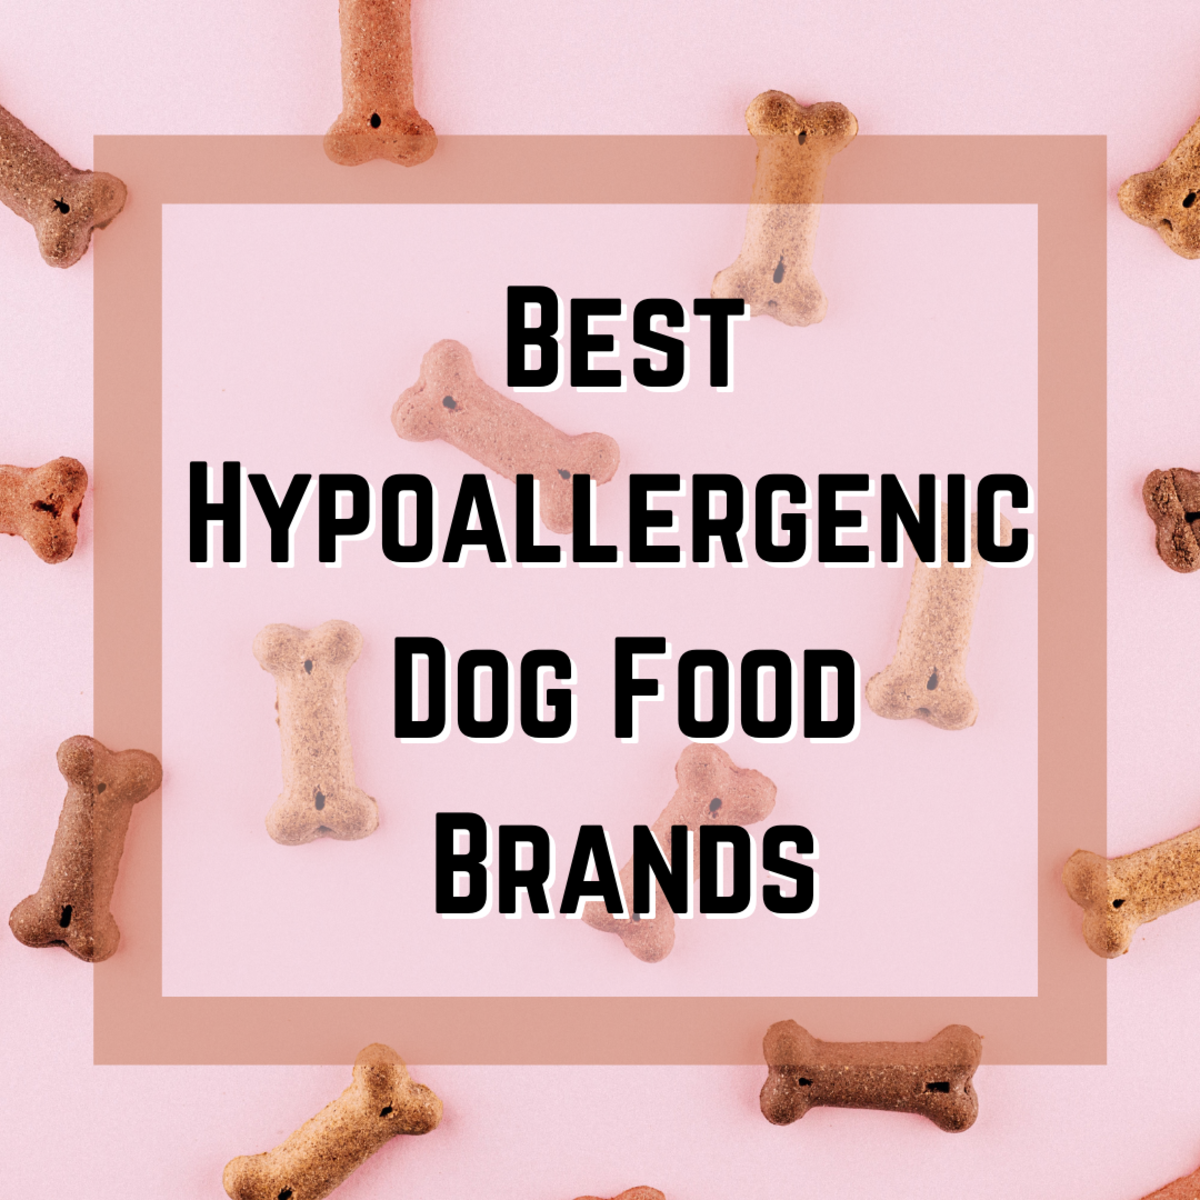 Learn whether your dog needs hypoallergenic food, and take a look at the top 5 hypoallergenic dog food brands.